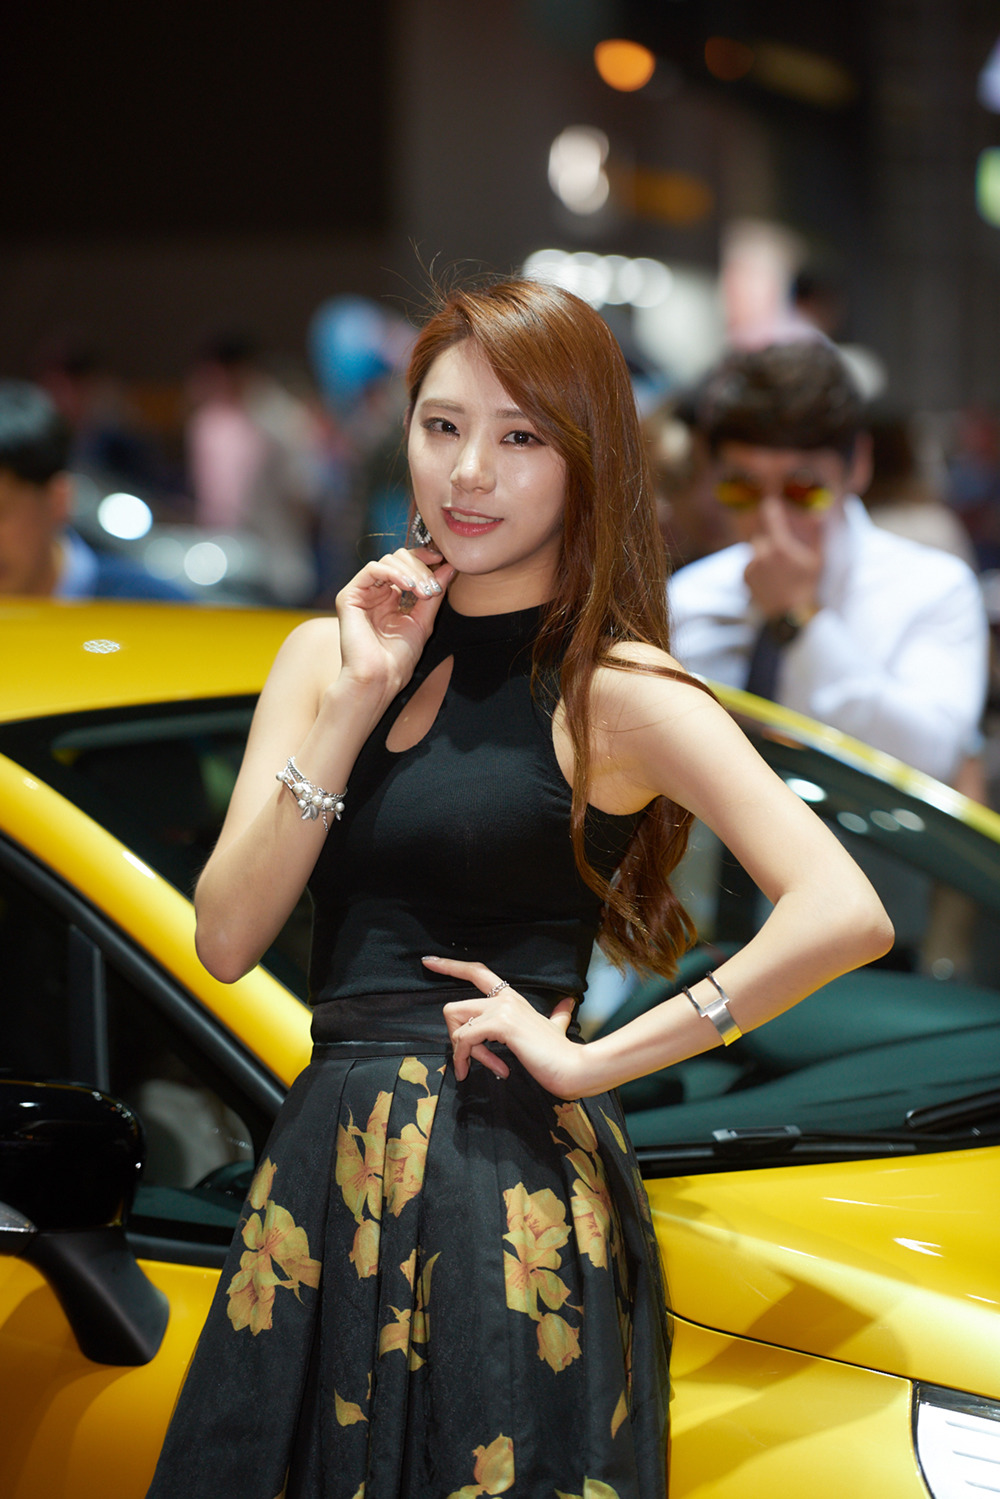 Renault Samsung Model - 한현진